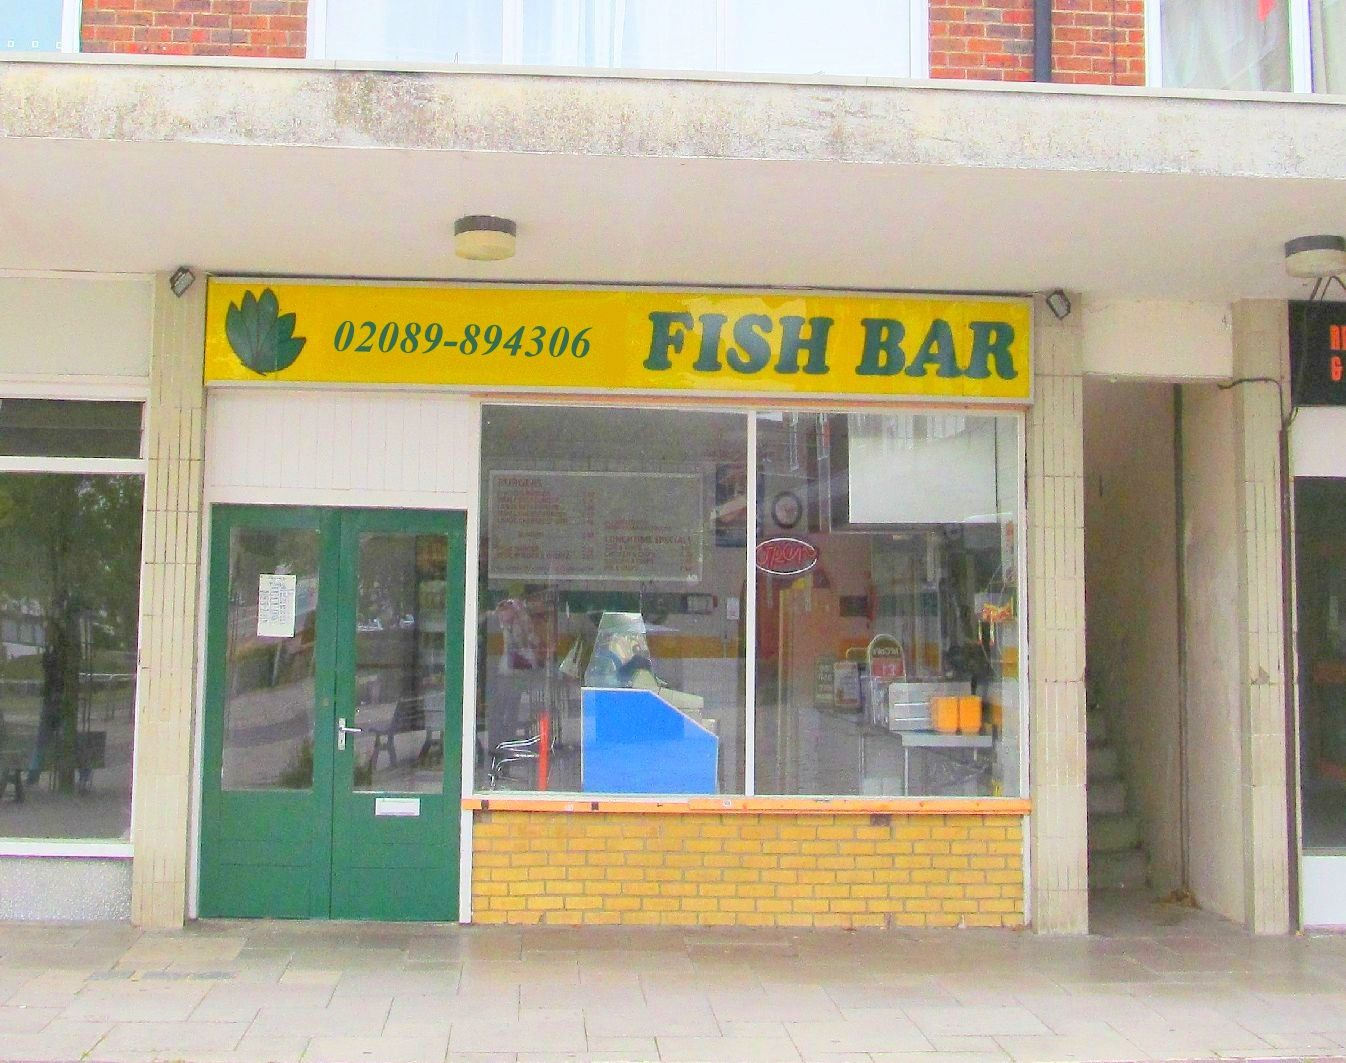 Dorset, Poole Mid Parade Fish & Chip Takeaway Business, Closes 8:00pm Latest, B